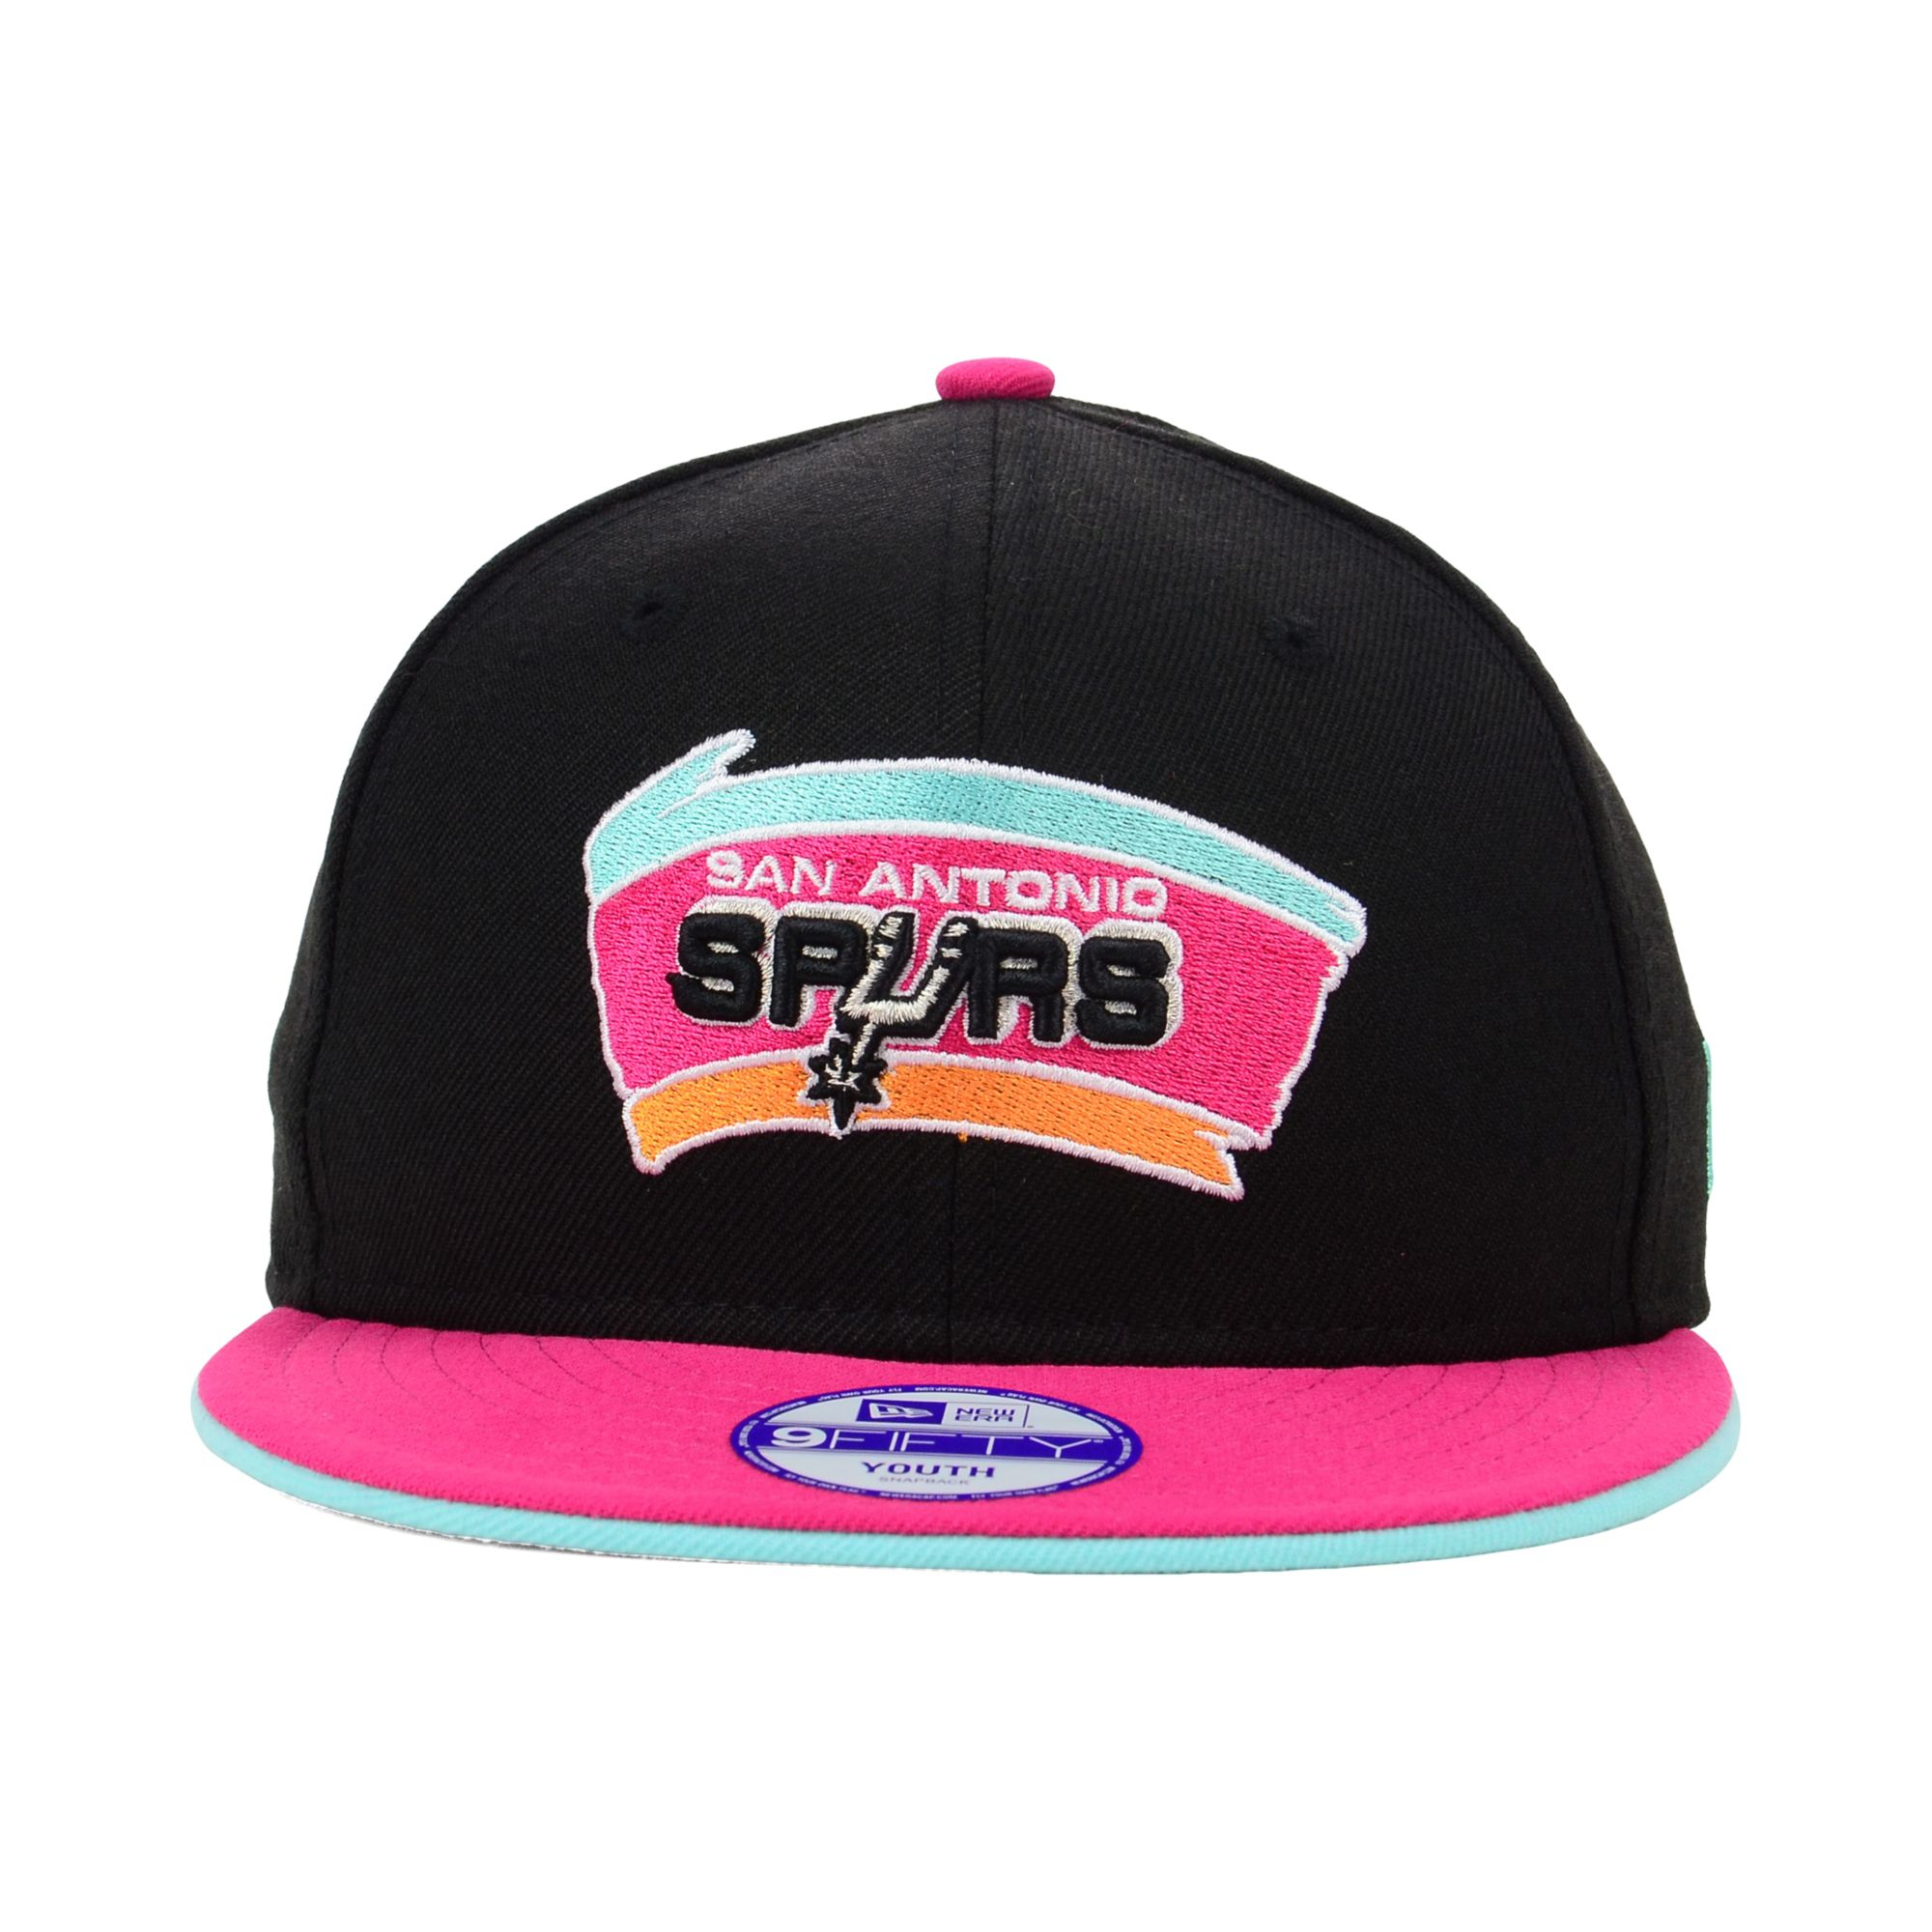 promo code 81891 7dd93 KTZ Kids San Antonio Spurs Black Team Flip 9fifty Snapback Cap in ...